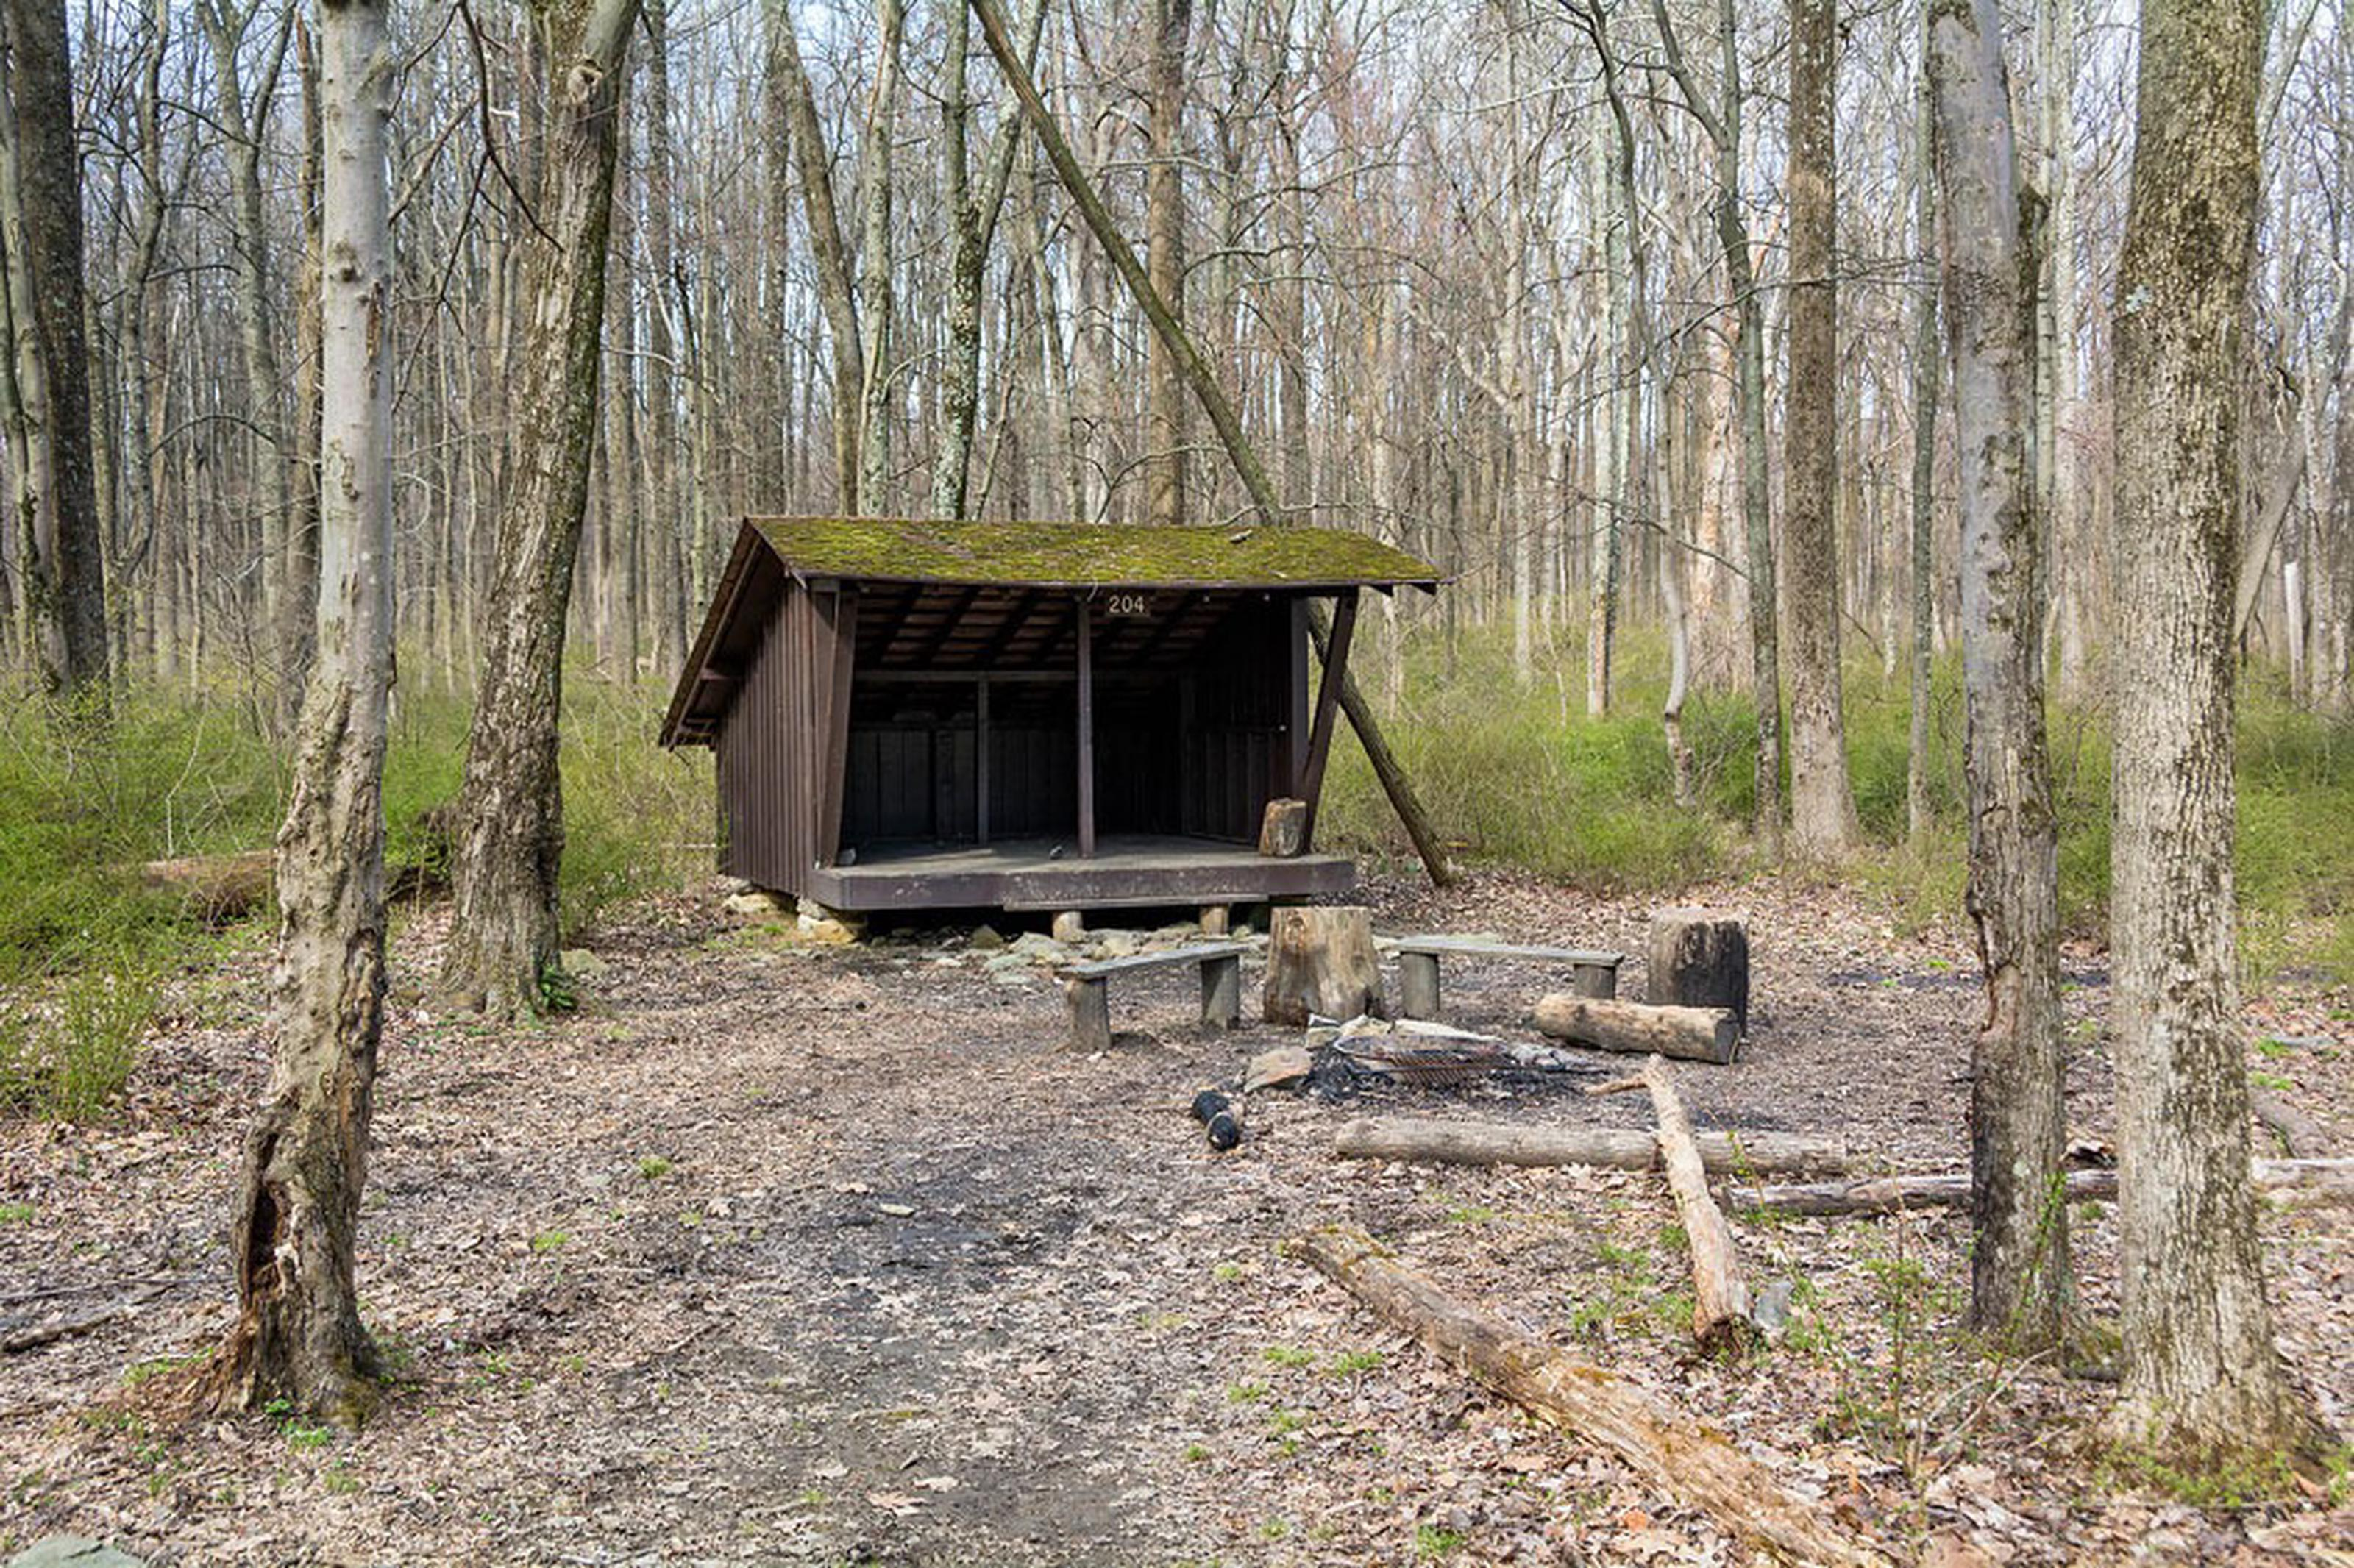 an adirondack shelter with campfire circle and wooden benches in front of itAdirondack shelter